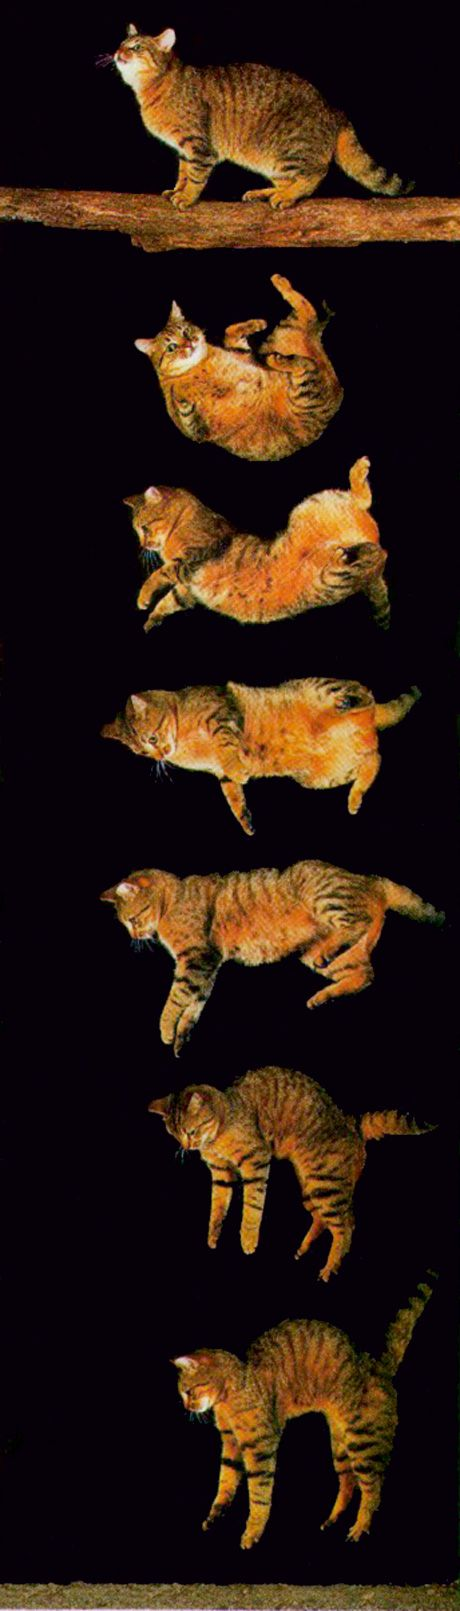 2001: The Journal of the American Veterinary Medical Association publishes a study of 132 cats who fell from high-rise buildings. It concludes that, contrary to expectations, the higher the fall, the more likely the cat is to survive. Researchers hypothesize that in falls of more than seven stories, cats are able to flay their bodies like a parachute, decreasing their terminal velocity.